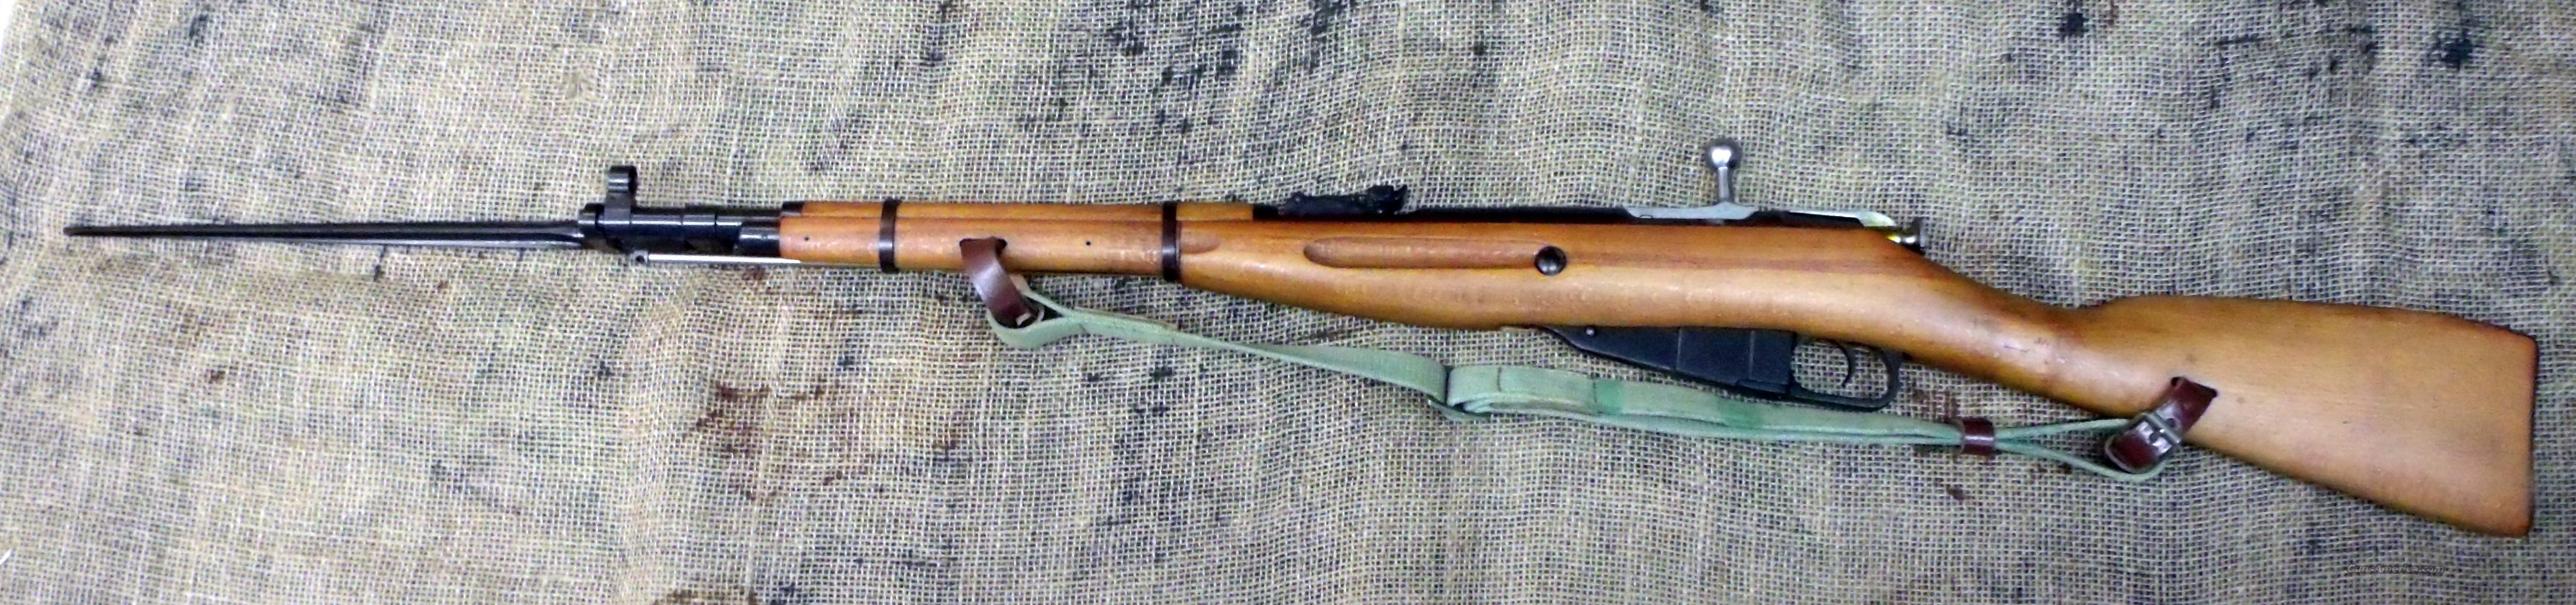 Polish Mod. 1944 Nagant Carbine, 7.62x54R Cal.  Guns > Rifles > Mosin-Nagant Rifles/Carbines